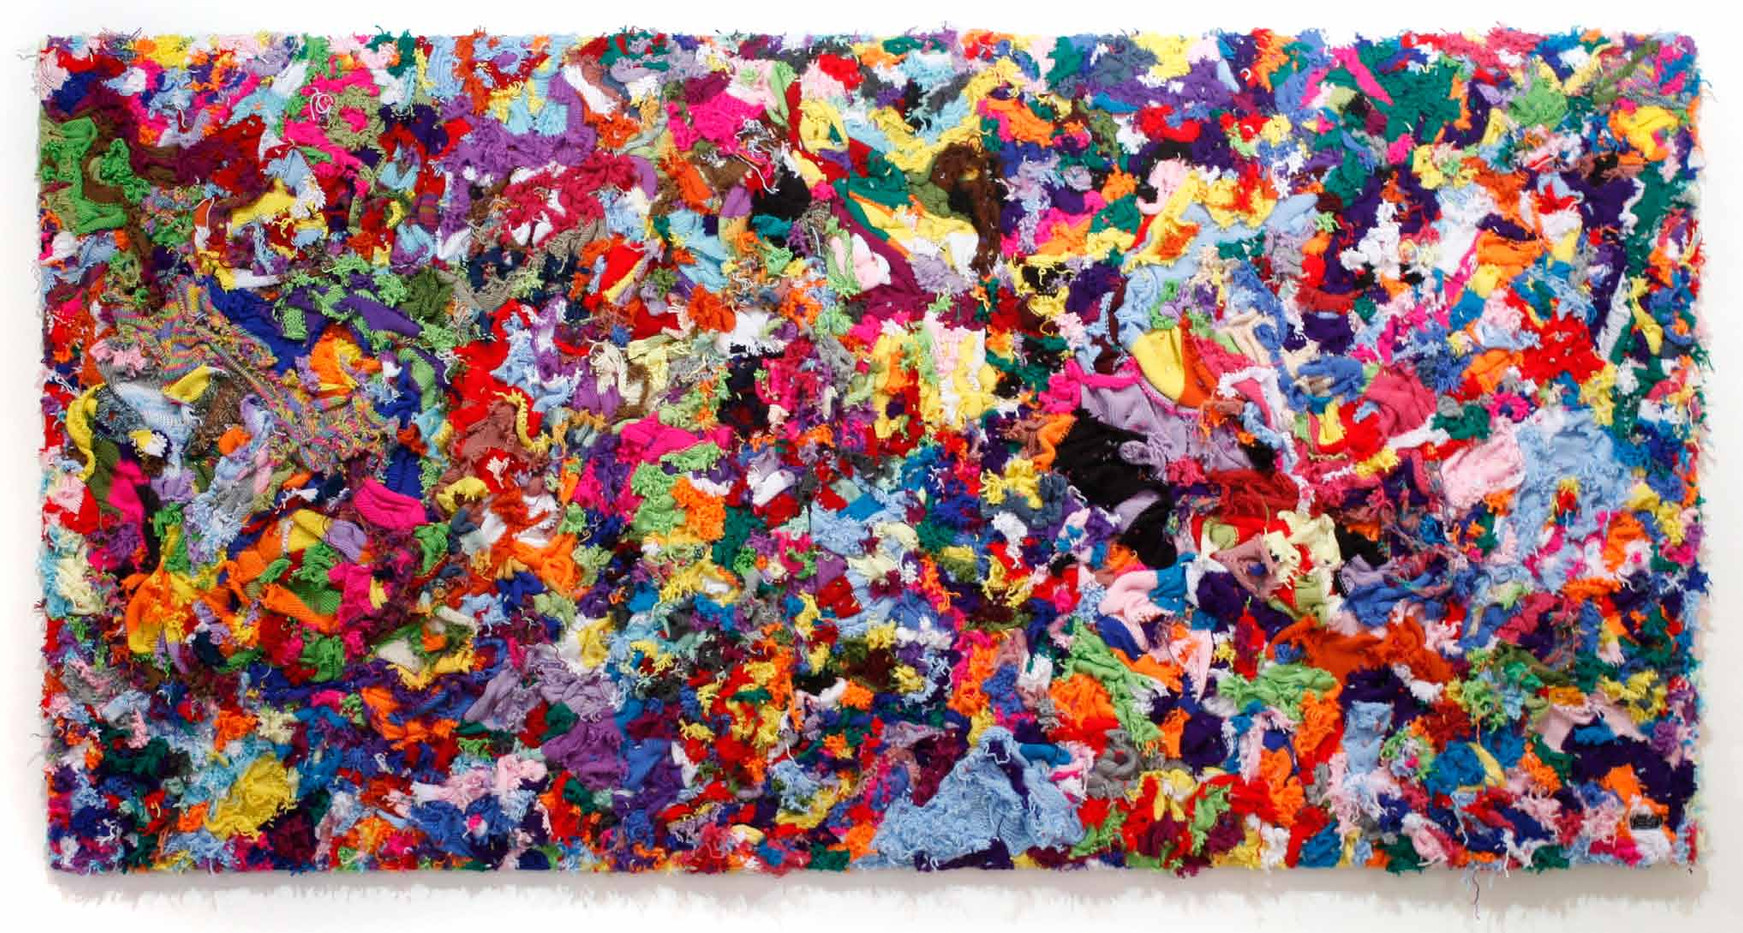 Barend de Wet | Maximal Large Knitting II  | 2012 | 100% Acrylic Wool and Paint on Board | 123 x 245 cm